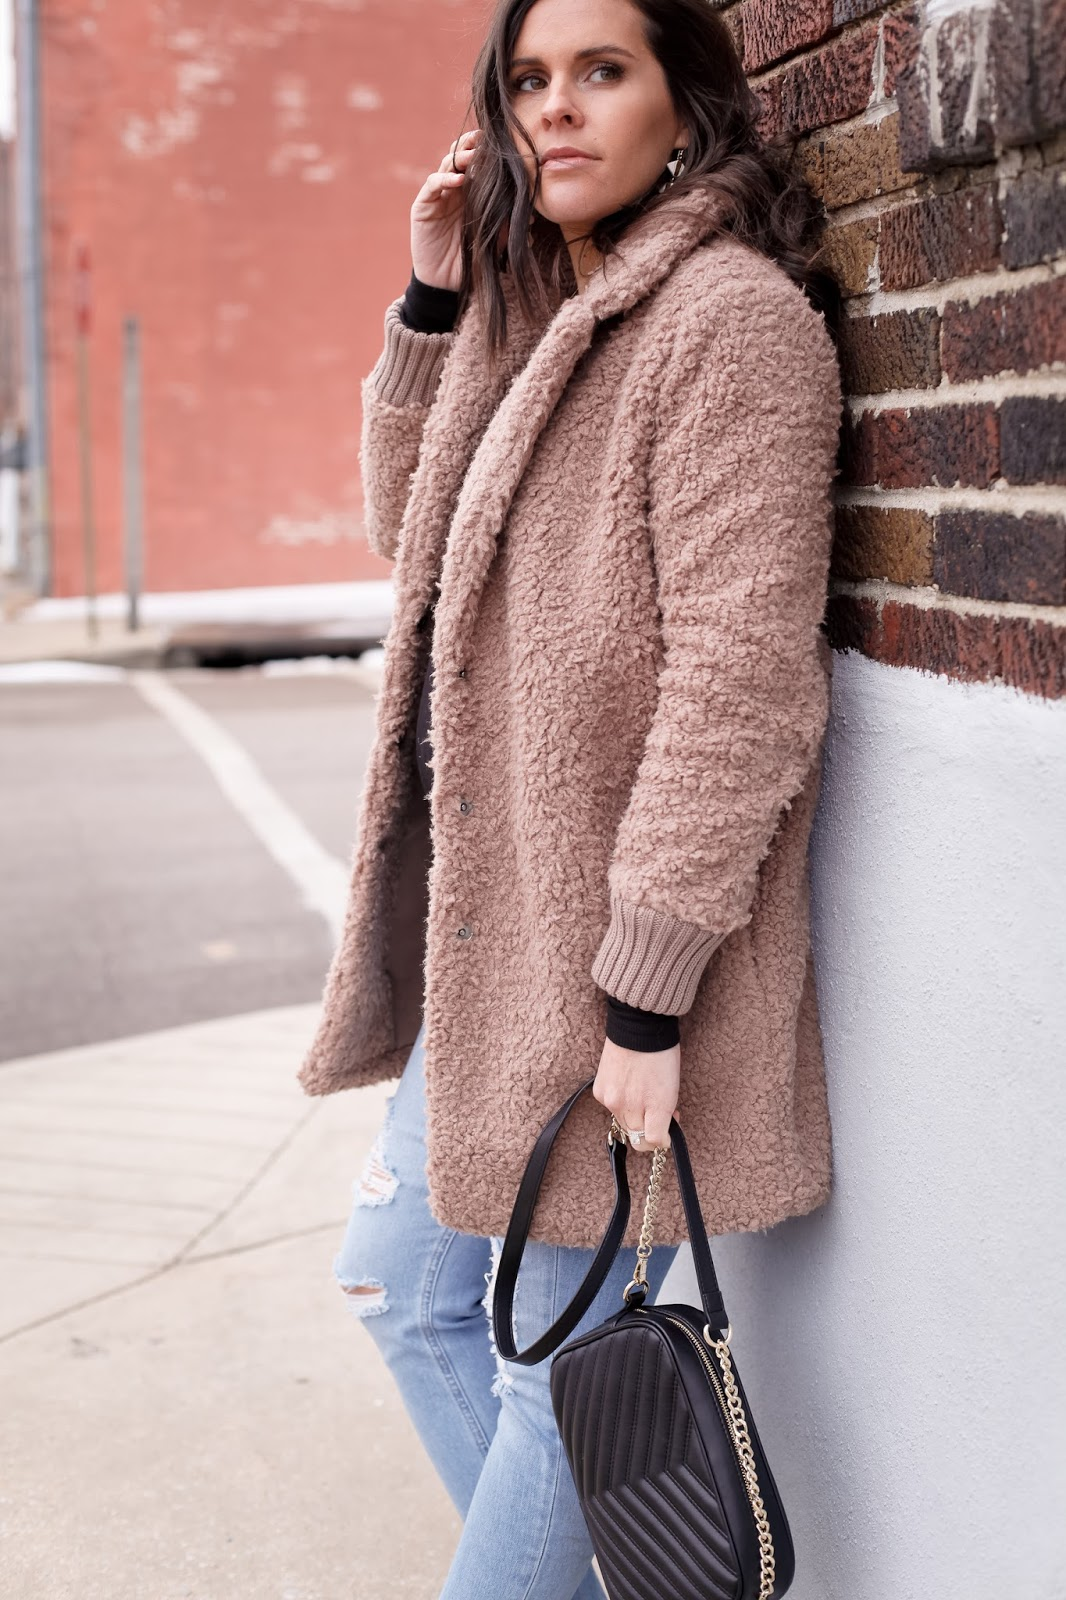 Styling the teddy coat.